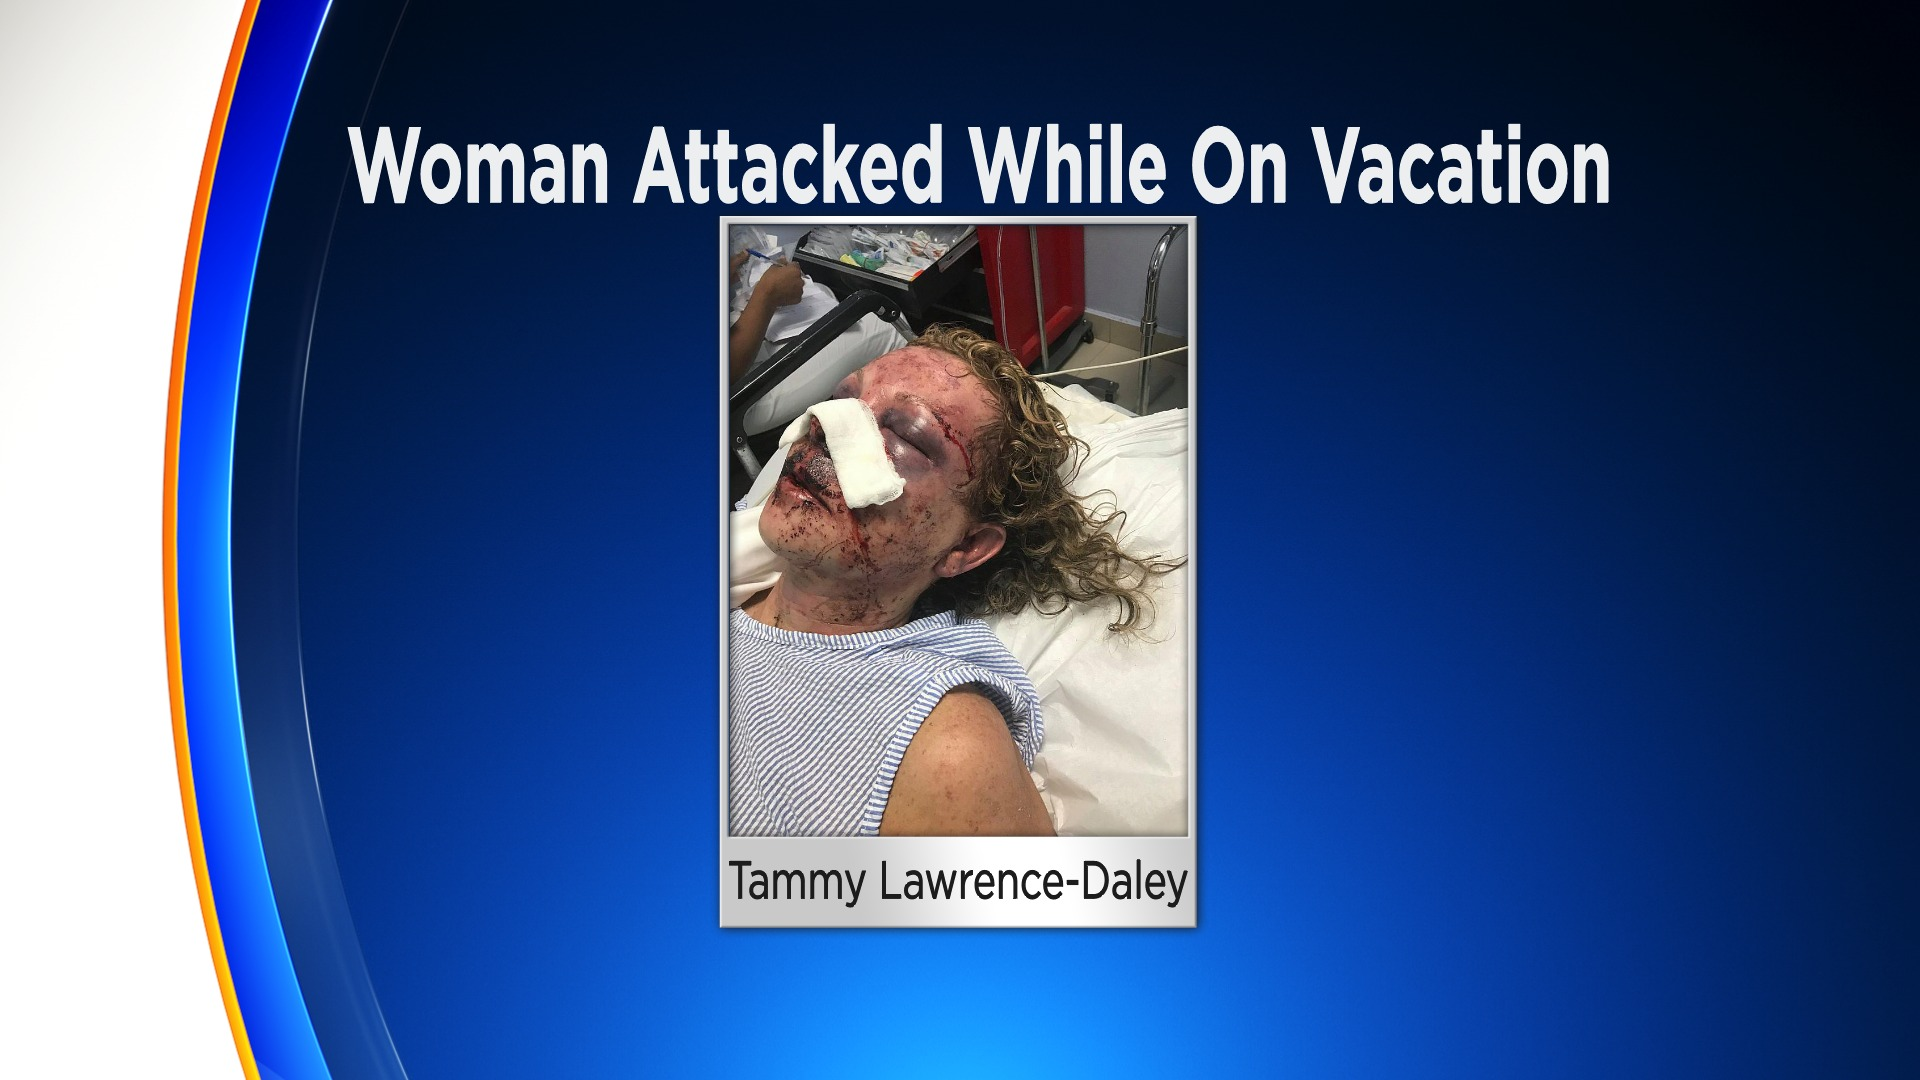 Dominican Republic Resort Where Delaware Mother Claims She